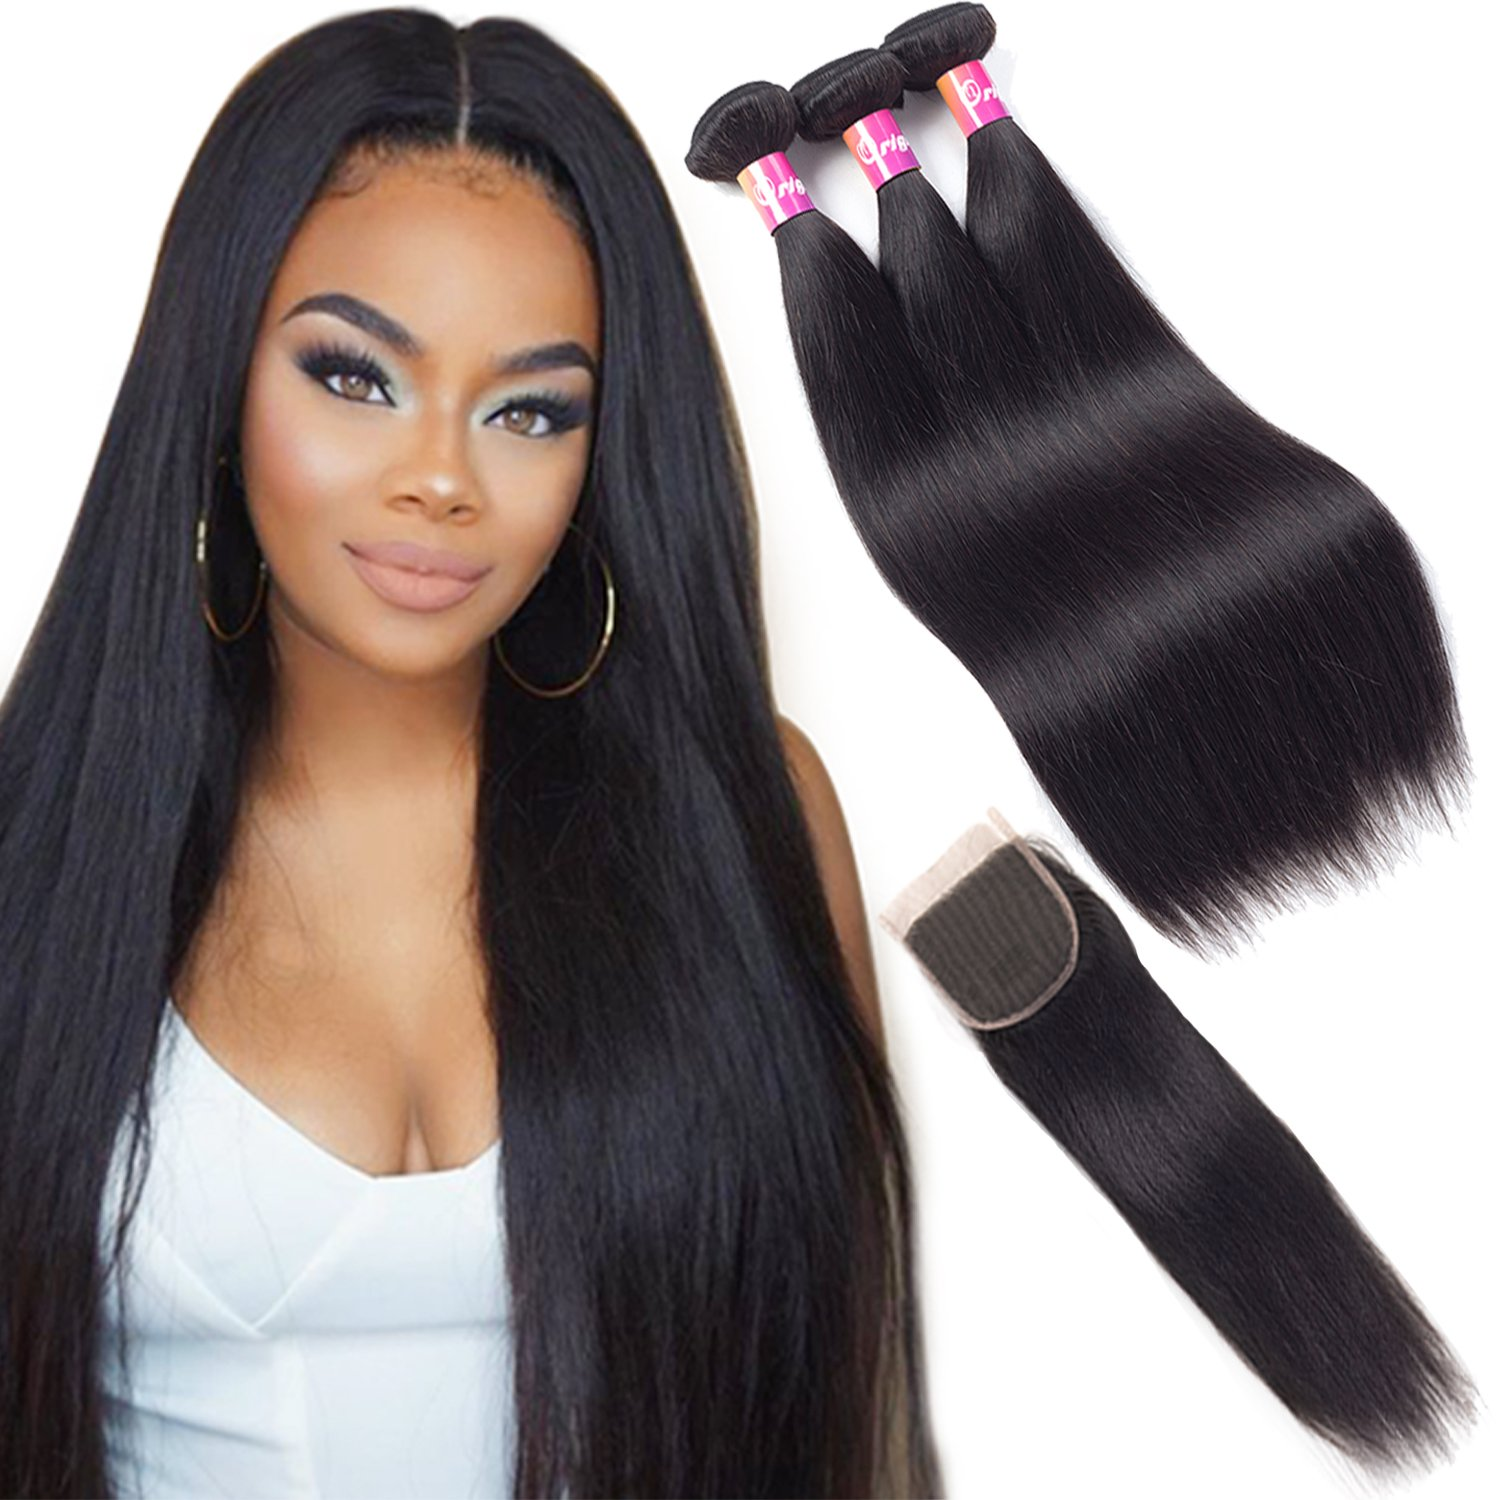 Malaysian hair with closure 10A remy hair with closure straight hair 3 bundles with free part lace closure natural color by Originea (18''20''22''with 16''closure)